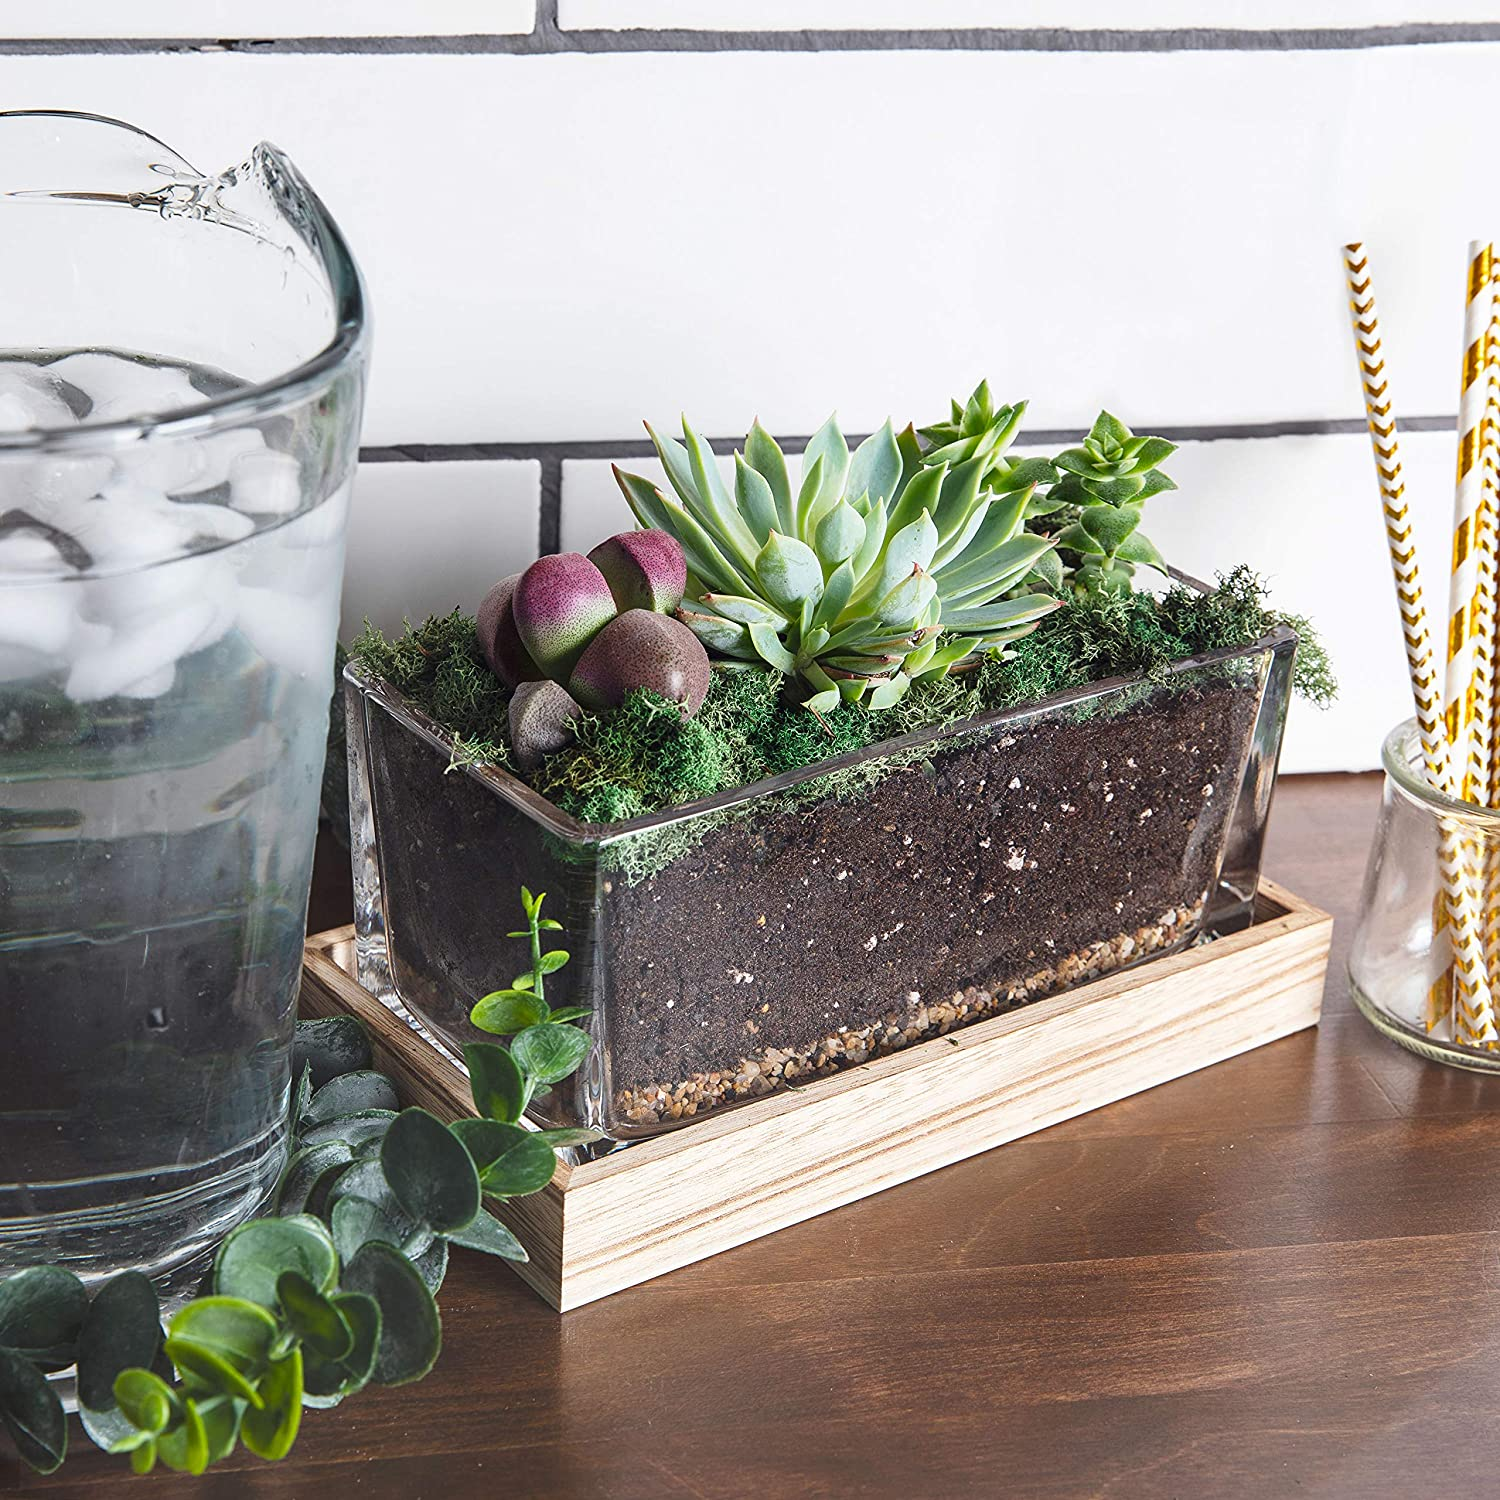 IvyKeith Leakproof Terrarium Farmhouse Wooden and Glass Easy to Plant Container Decor Flower Pot Planter DIY Display Box for Succulent Fern Moss Air Plants Miniature Fairy Garden Gift No Plants